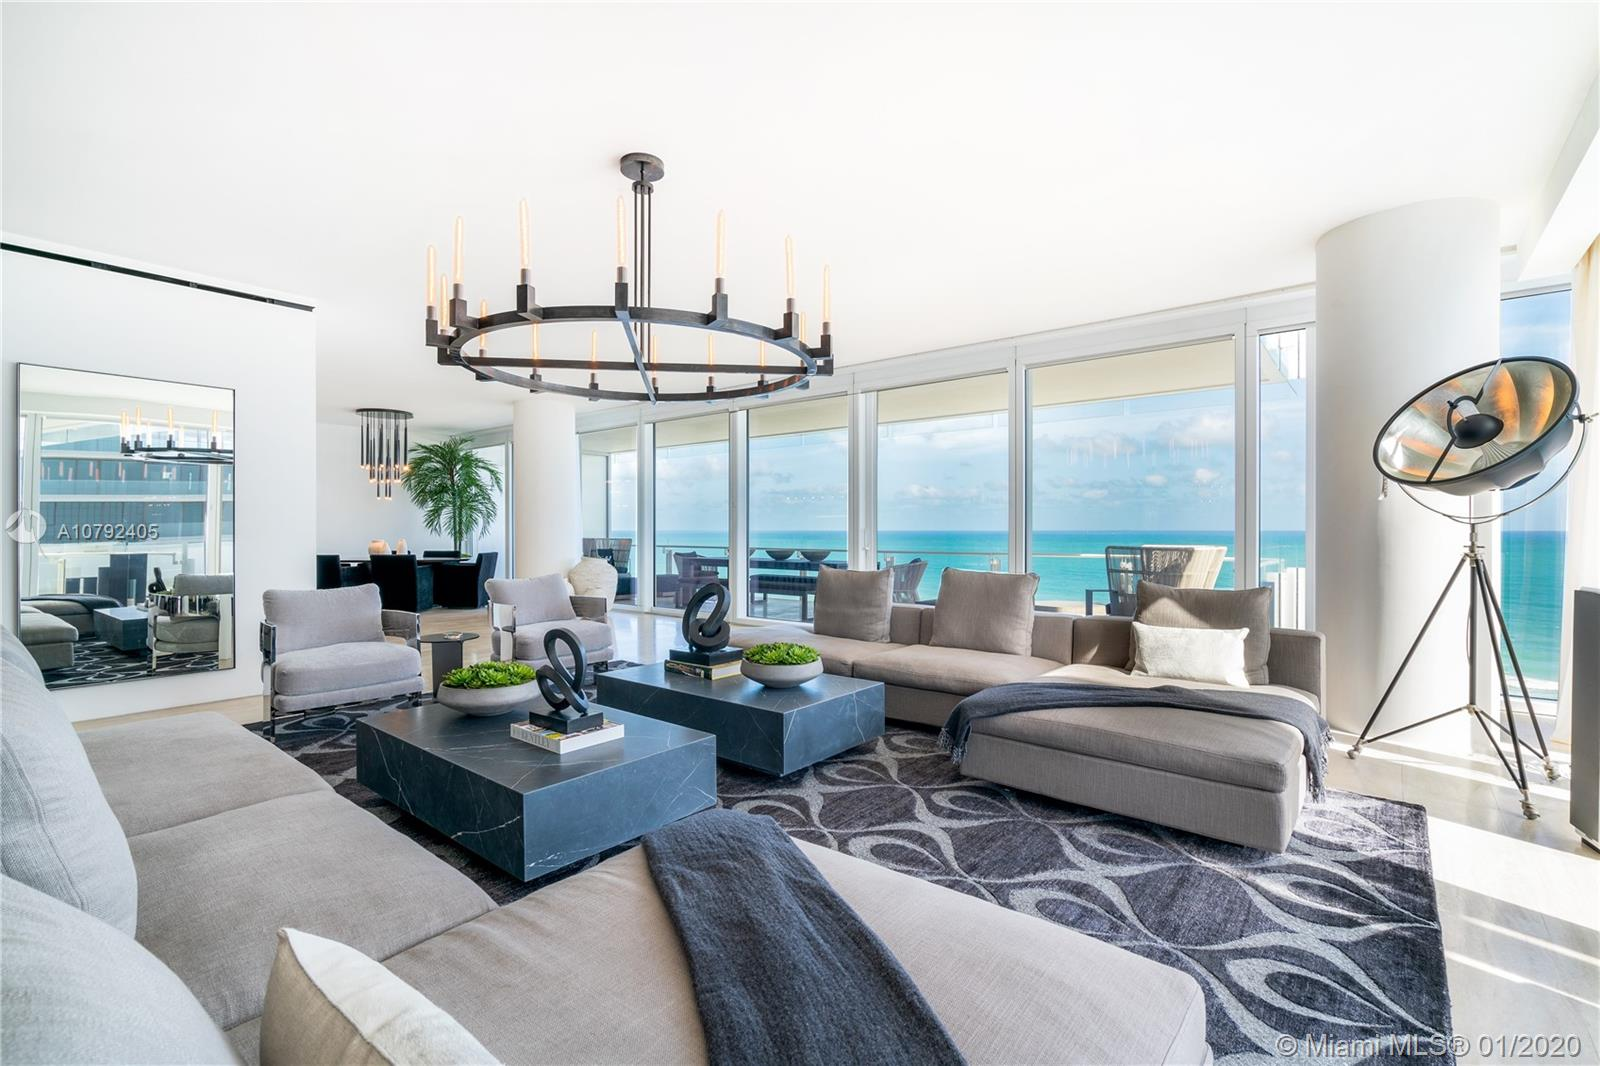 9001 Collins Ave, Unit #S-801 Luxury Real Estate